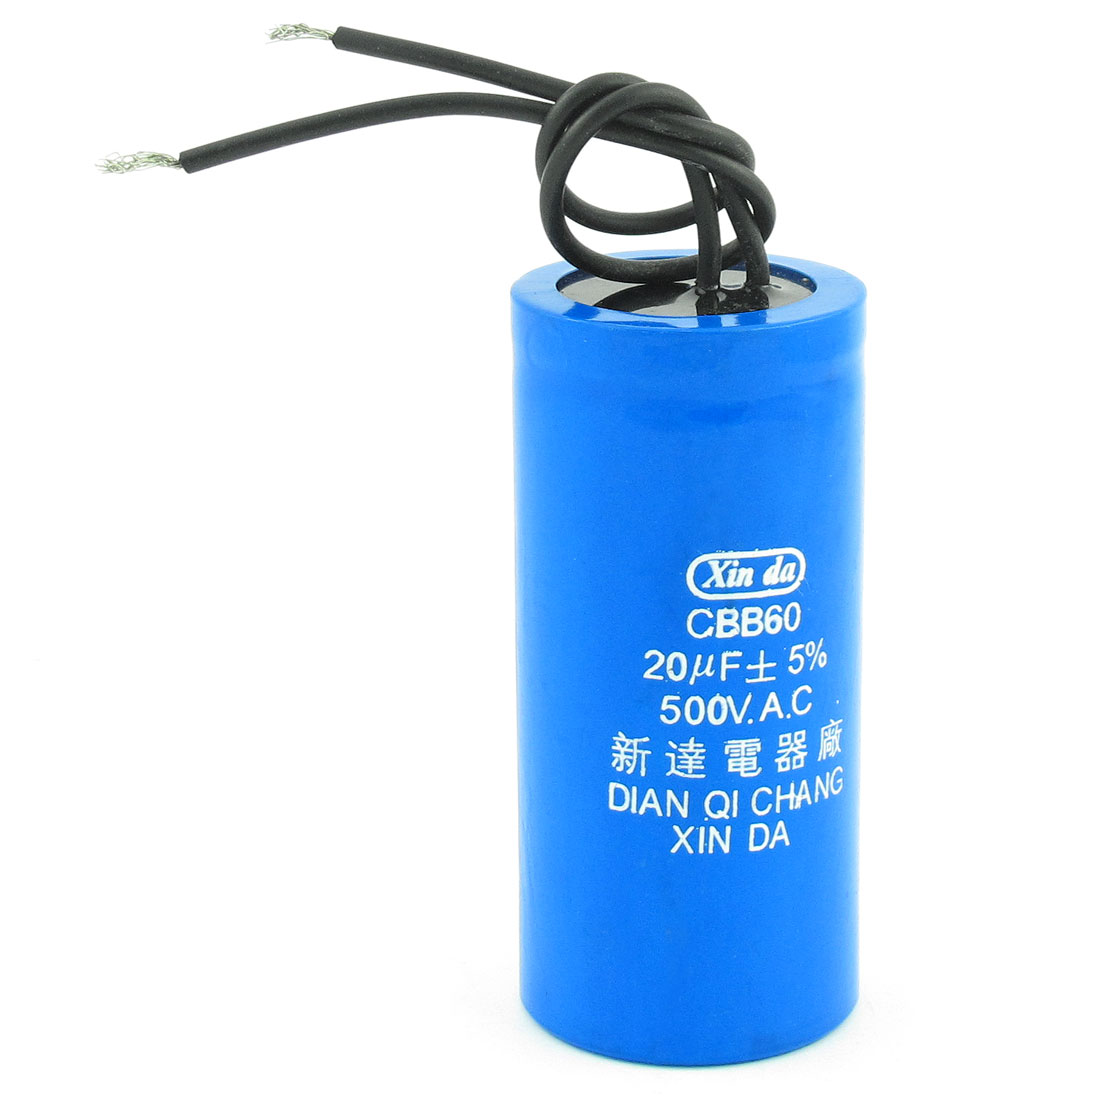 20uF 500V AC CBB60 Wired Lead Motor Run Capacitor Blue